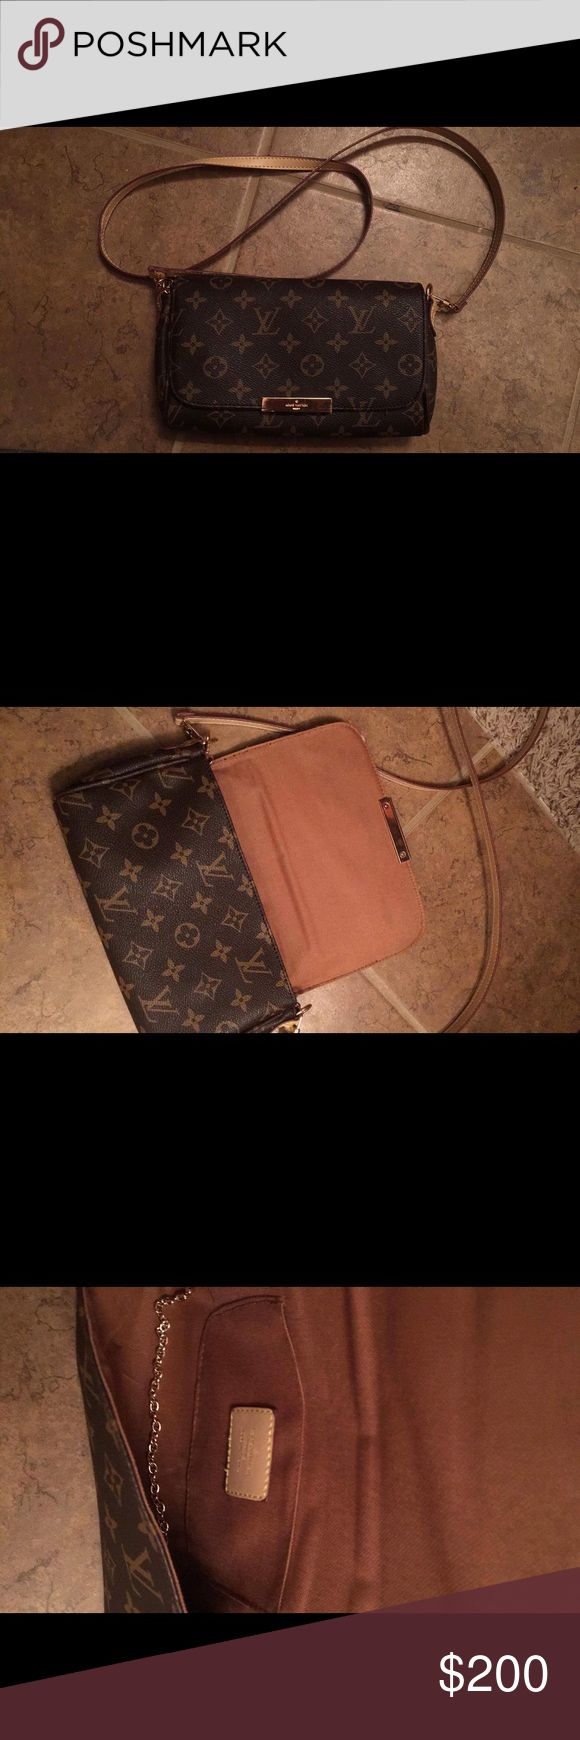 Louis Vuitton crossbody Favorite mm style bag. NON AUTH! Very cute and stylish. Comes with dust bag Louis Vuitton Bags Crossbody Bags